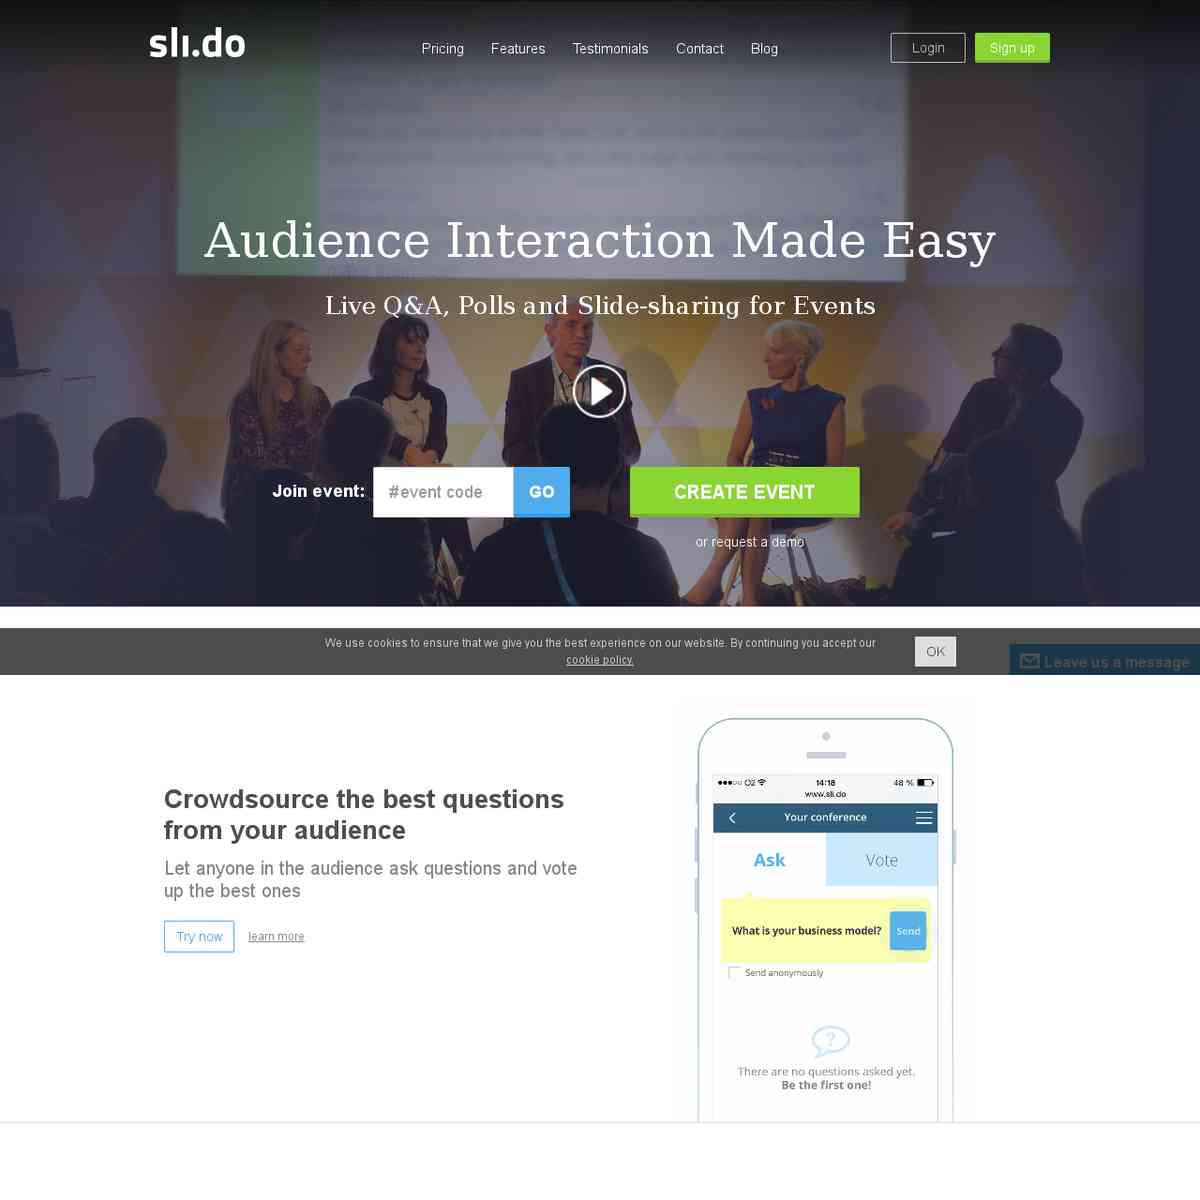 sli.do - Audience Interaction Made Easy